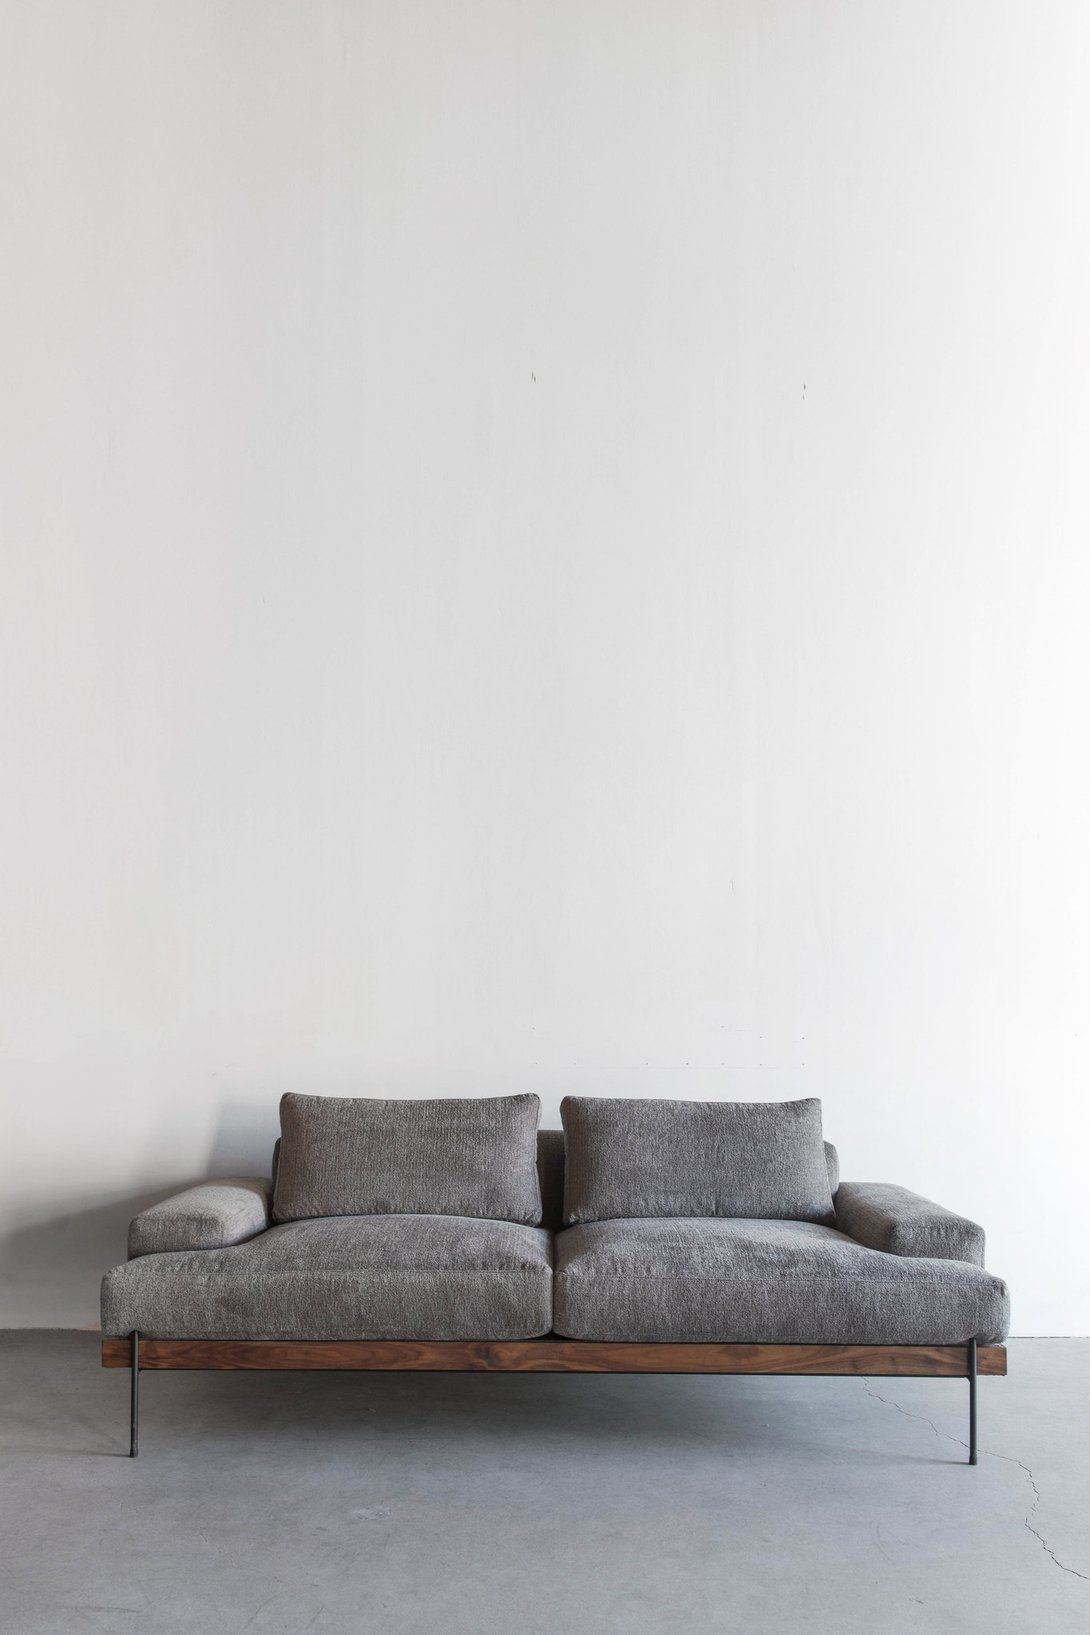 Custom Sectional Sofas Los Angeles Choosing A Sofa Rivera Couch Pinterest Furniture And